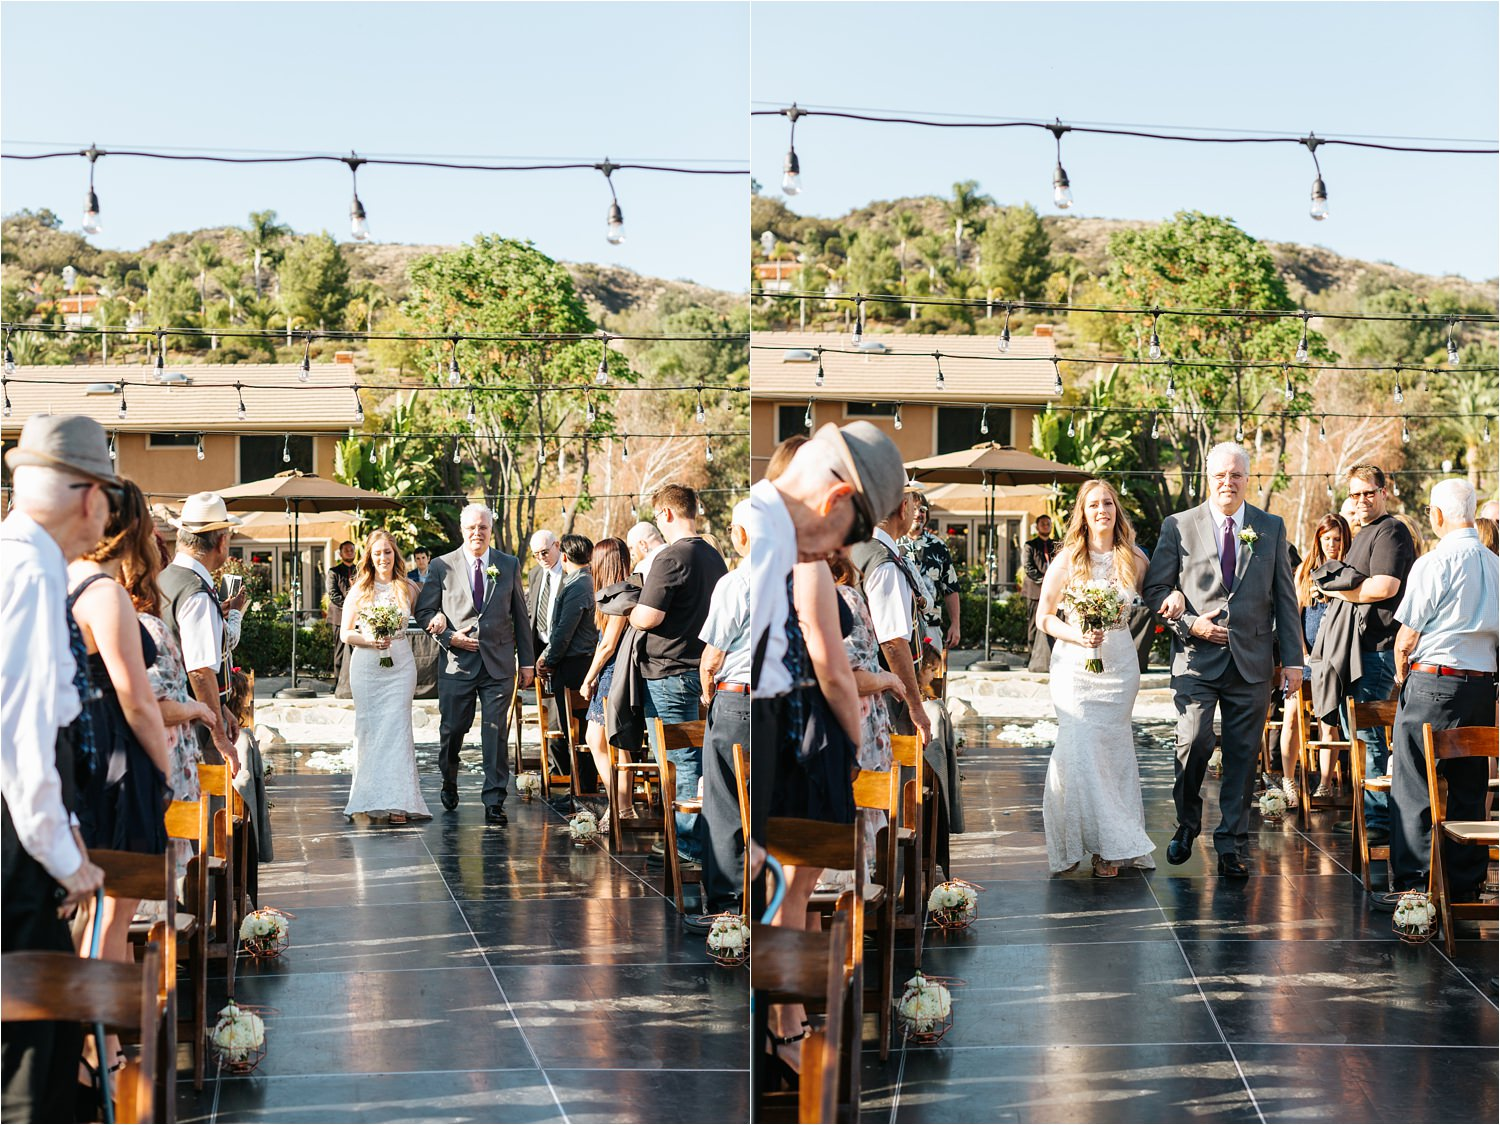 Elegant Backyard Wedding Ceremony - Bride Walking down the aisle - https://brittneyhannonphotography.com